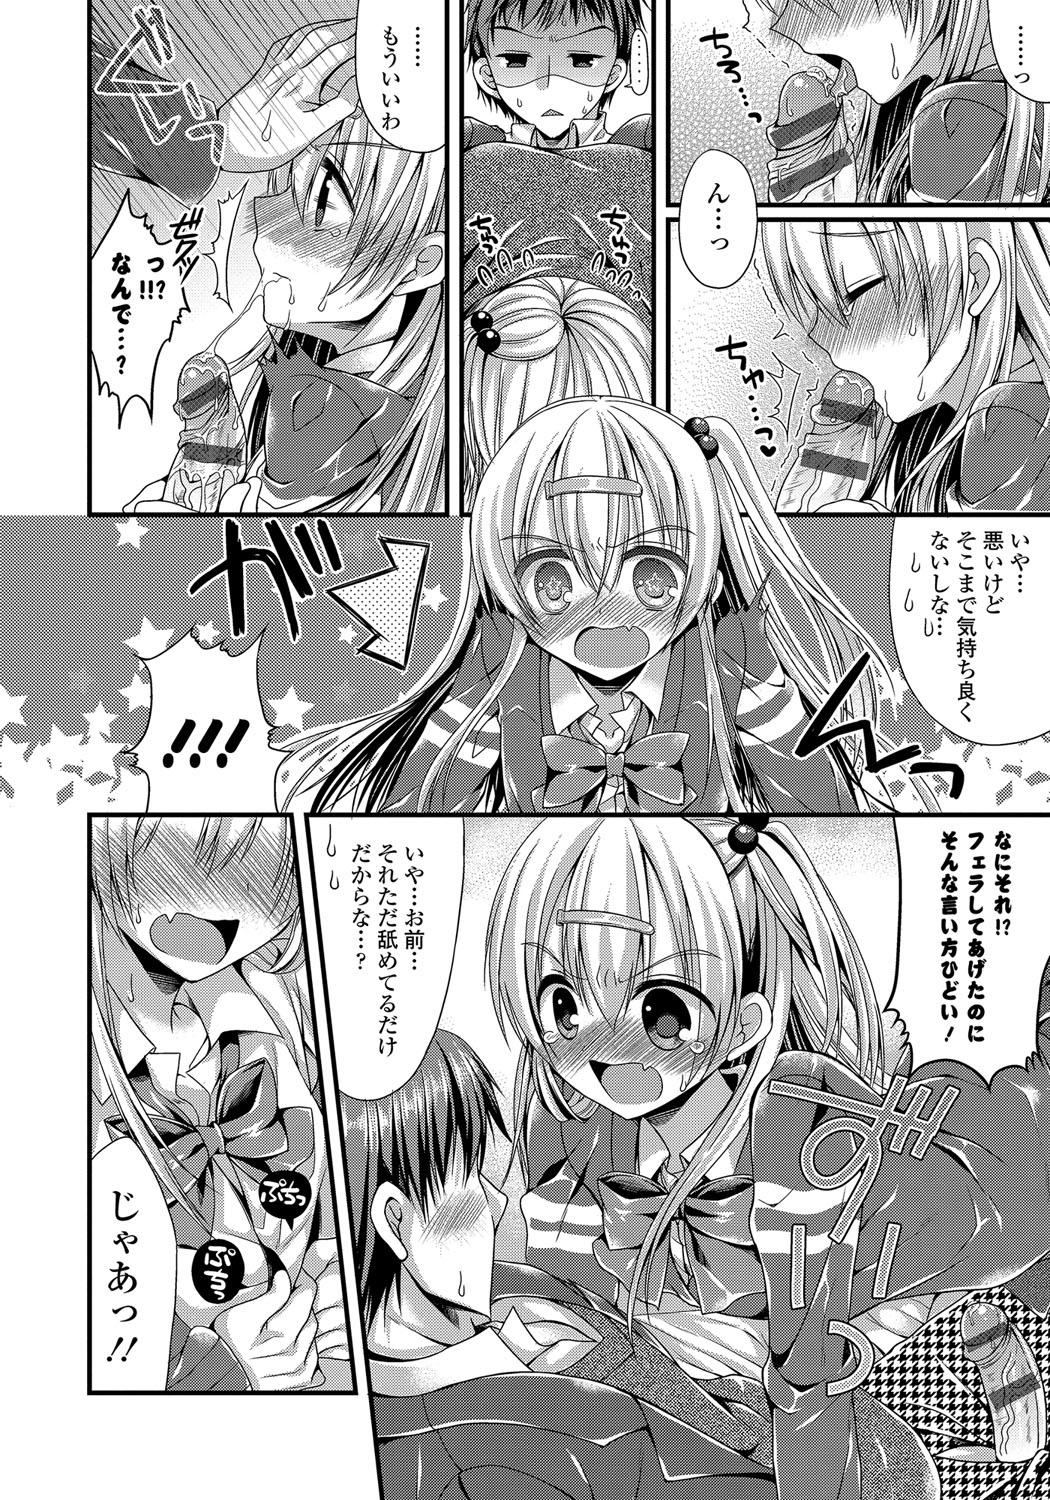 Kanojo to Hajimeteno - For the First Time with Her 112